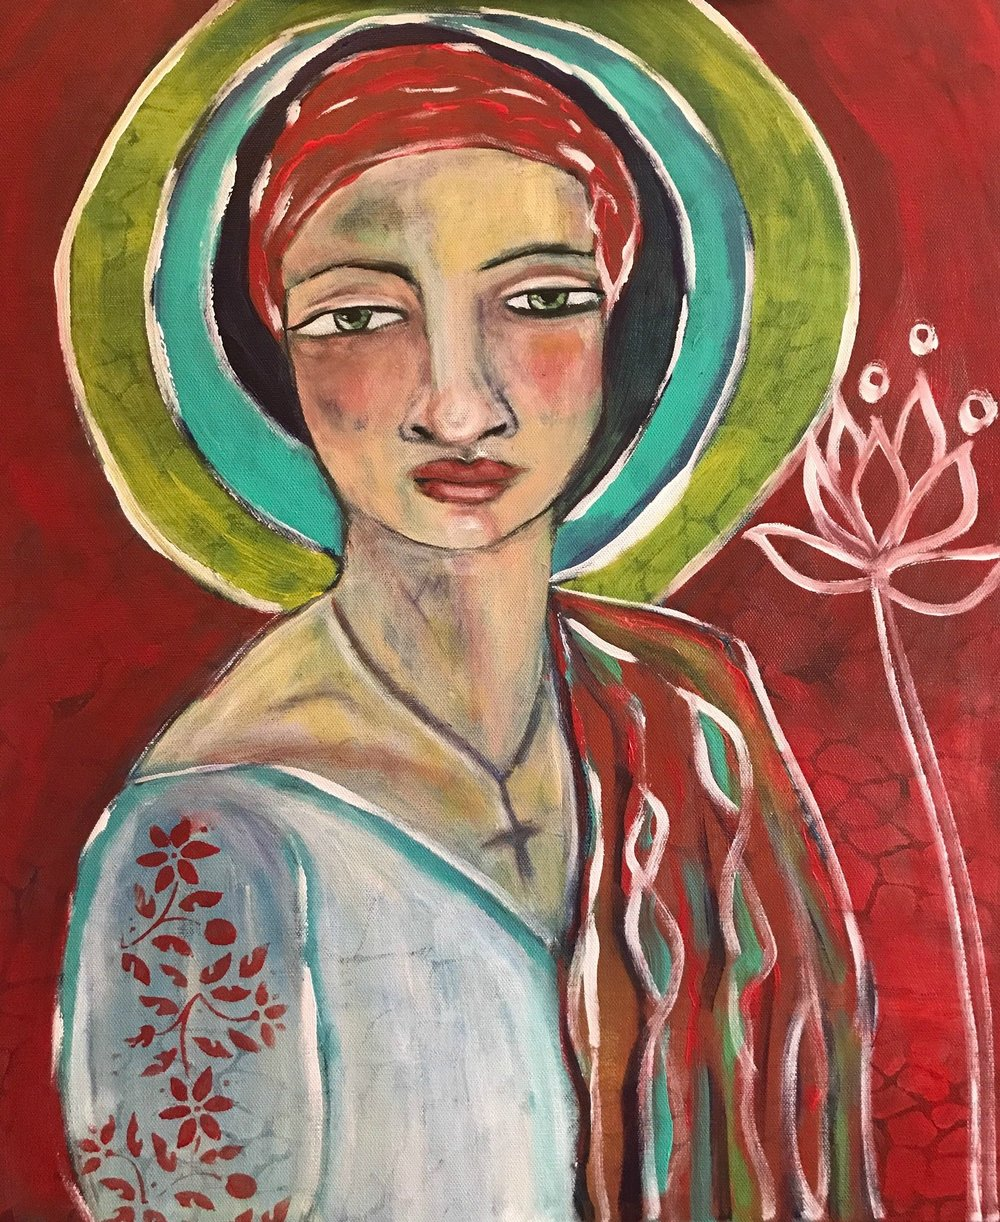 Untitled Prayer Painting  Acrylic on Canvas  20 x 24